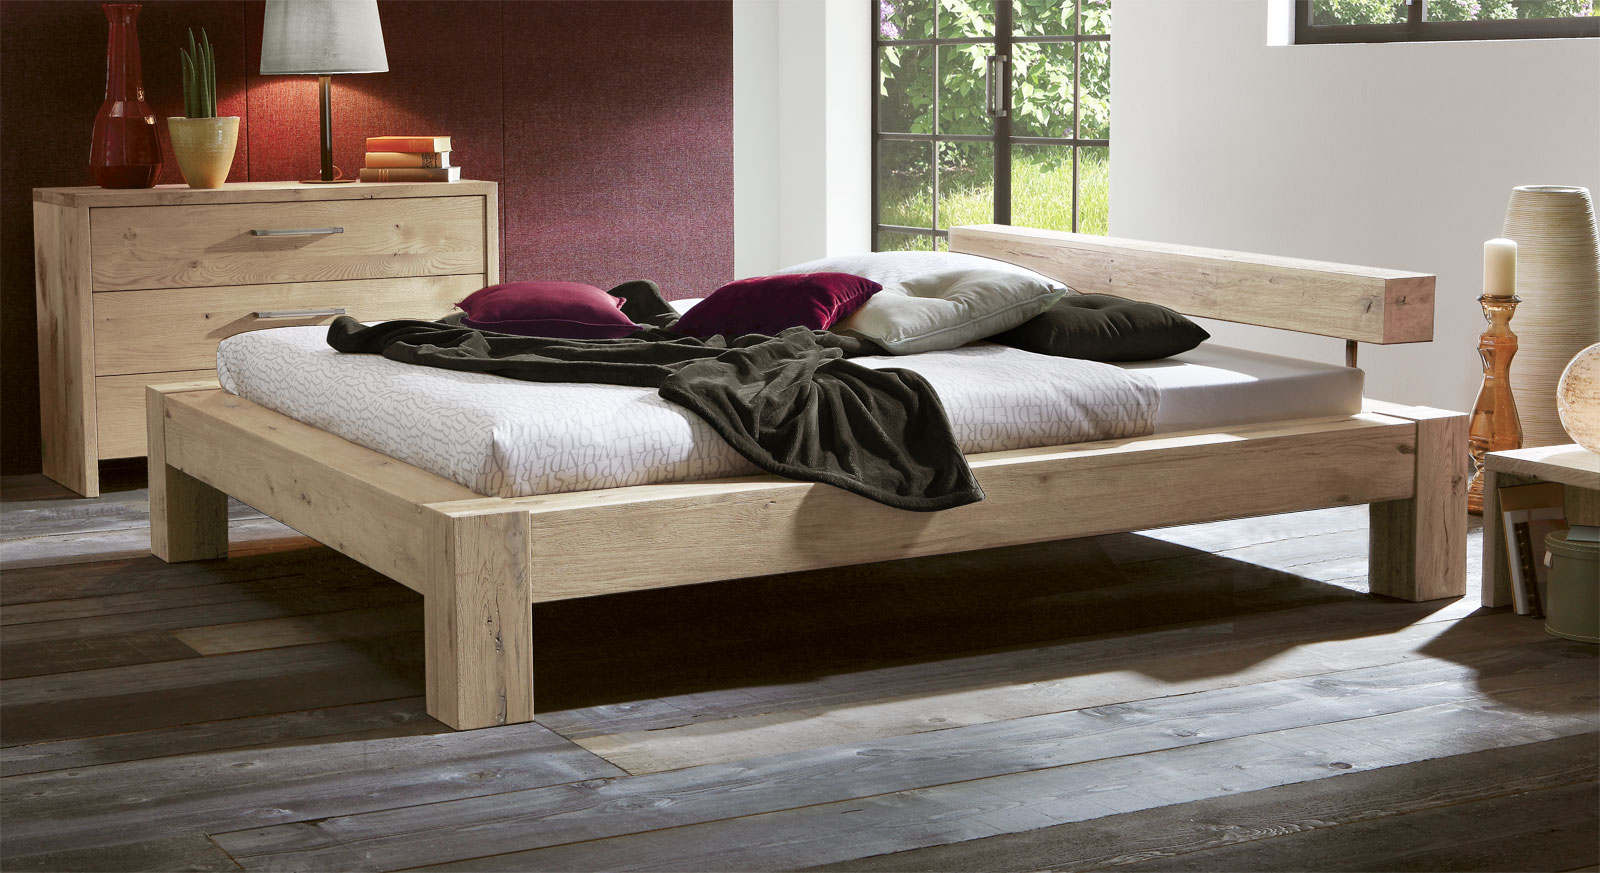 bett in komforth he aus massivem wildeichenholz rustico. Black Bedroom Furniture Sets. Home Design Ideas